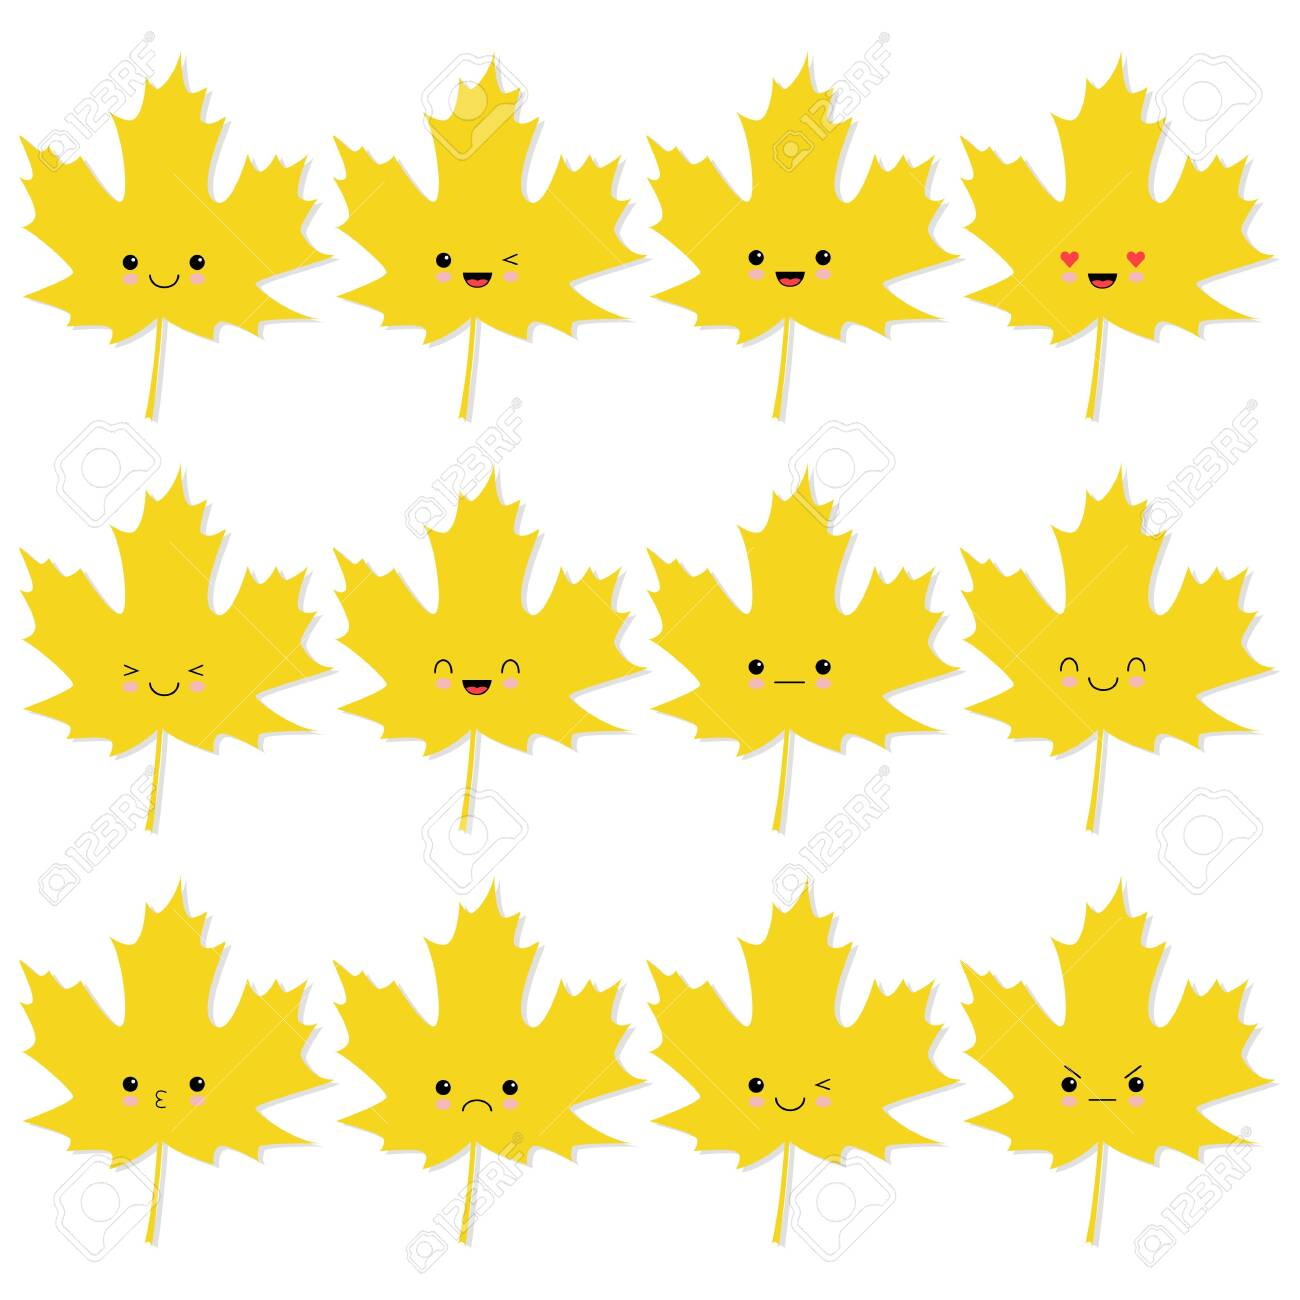 Collection Of Cute Autumn Leaves In Kawaii Style Vector Illustration Royalty Free Cliparts Vectors And Stock Illustration Image 124050808